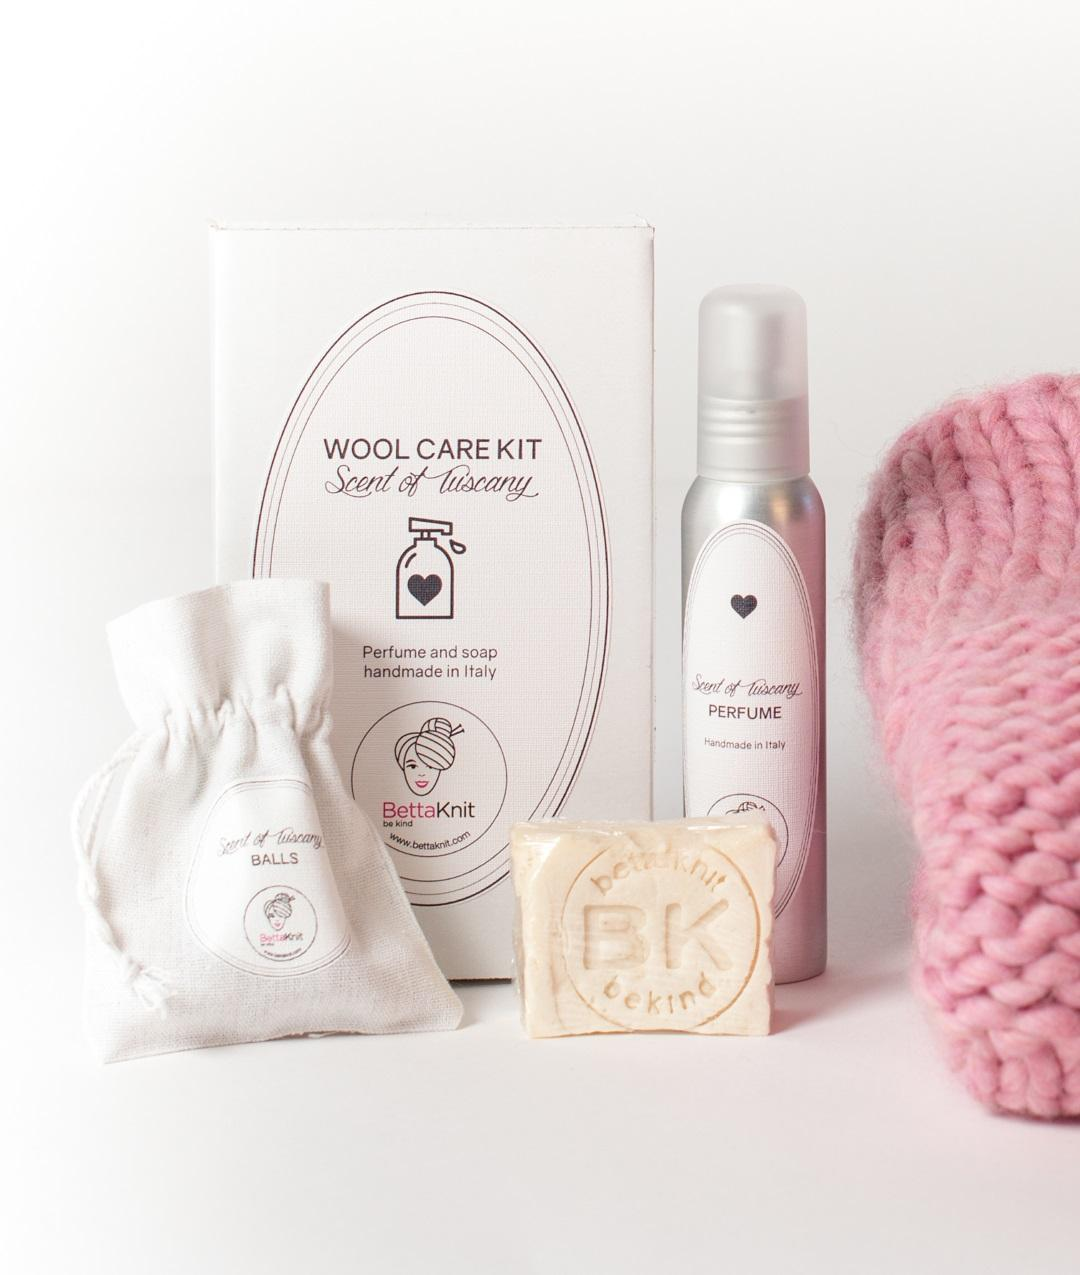 Kit Wool Care  - Scent of Tuscany - Wool Care kit - 1